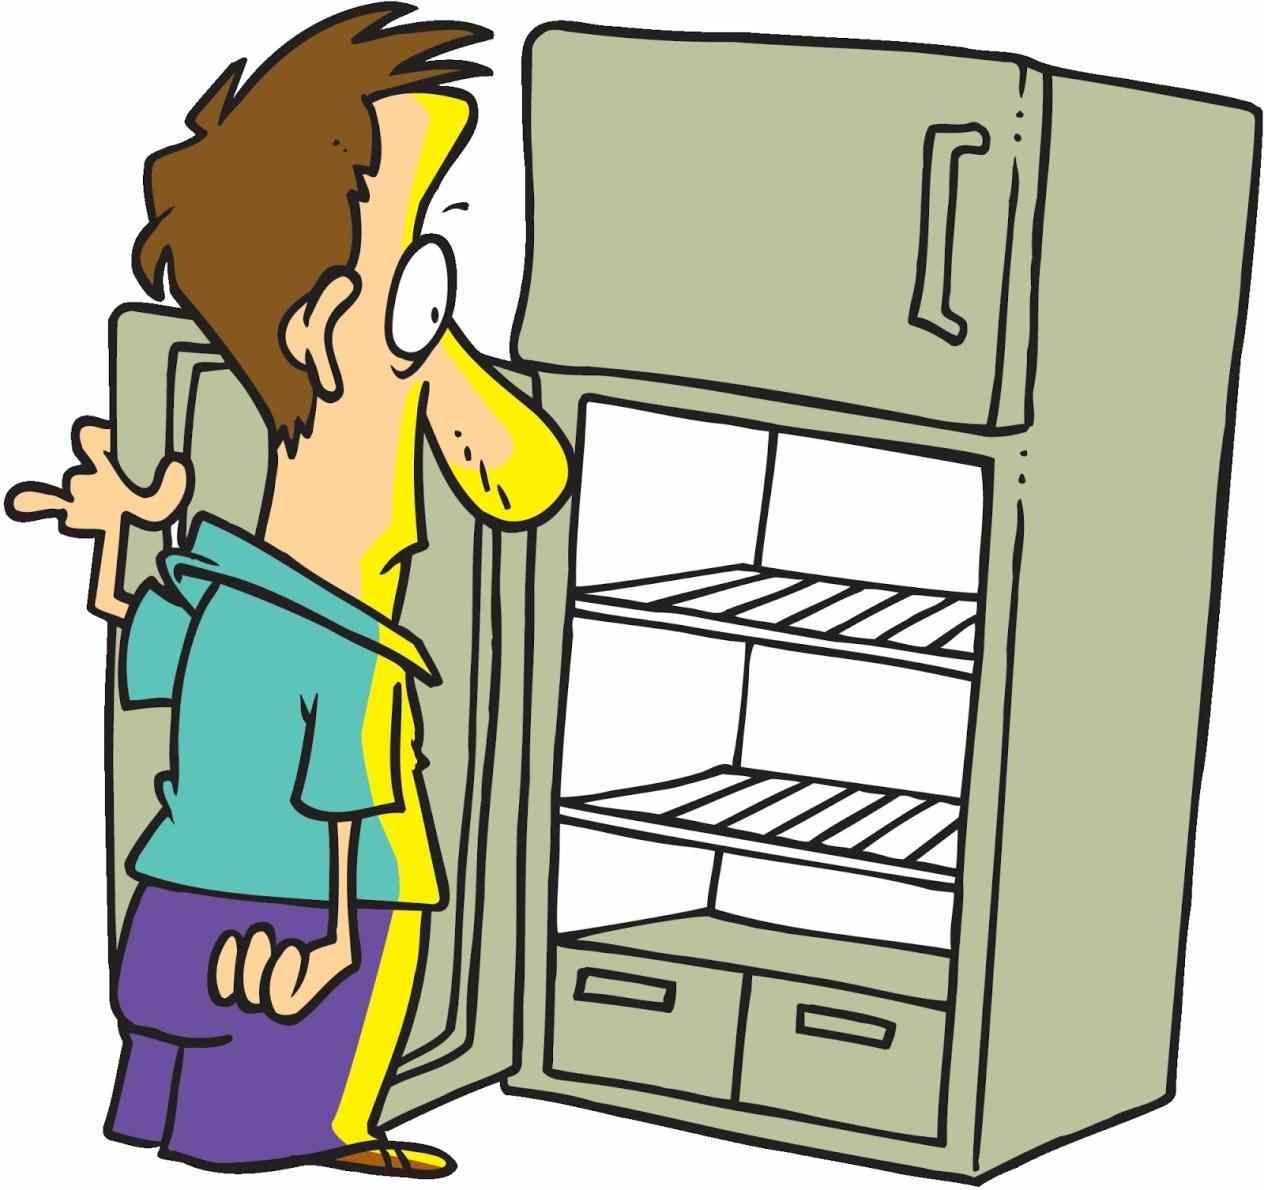 Stinky refrigerator clipart picture freeuse library Refrigerator Clipart | Free download best Refrigerator ... picture freeuse library